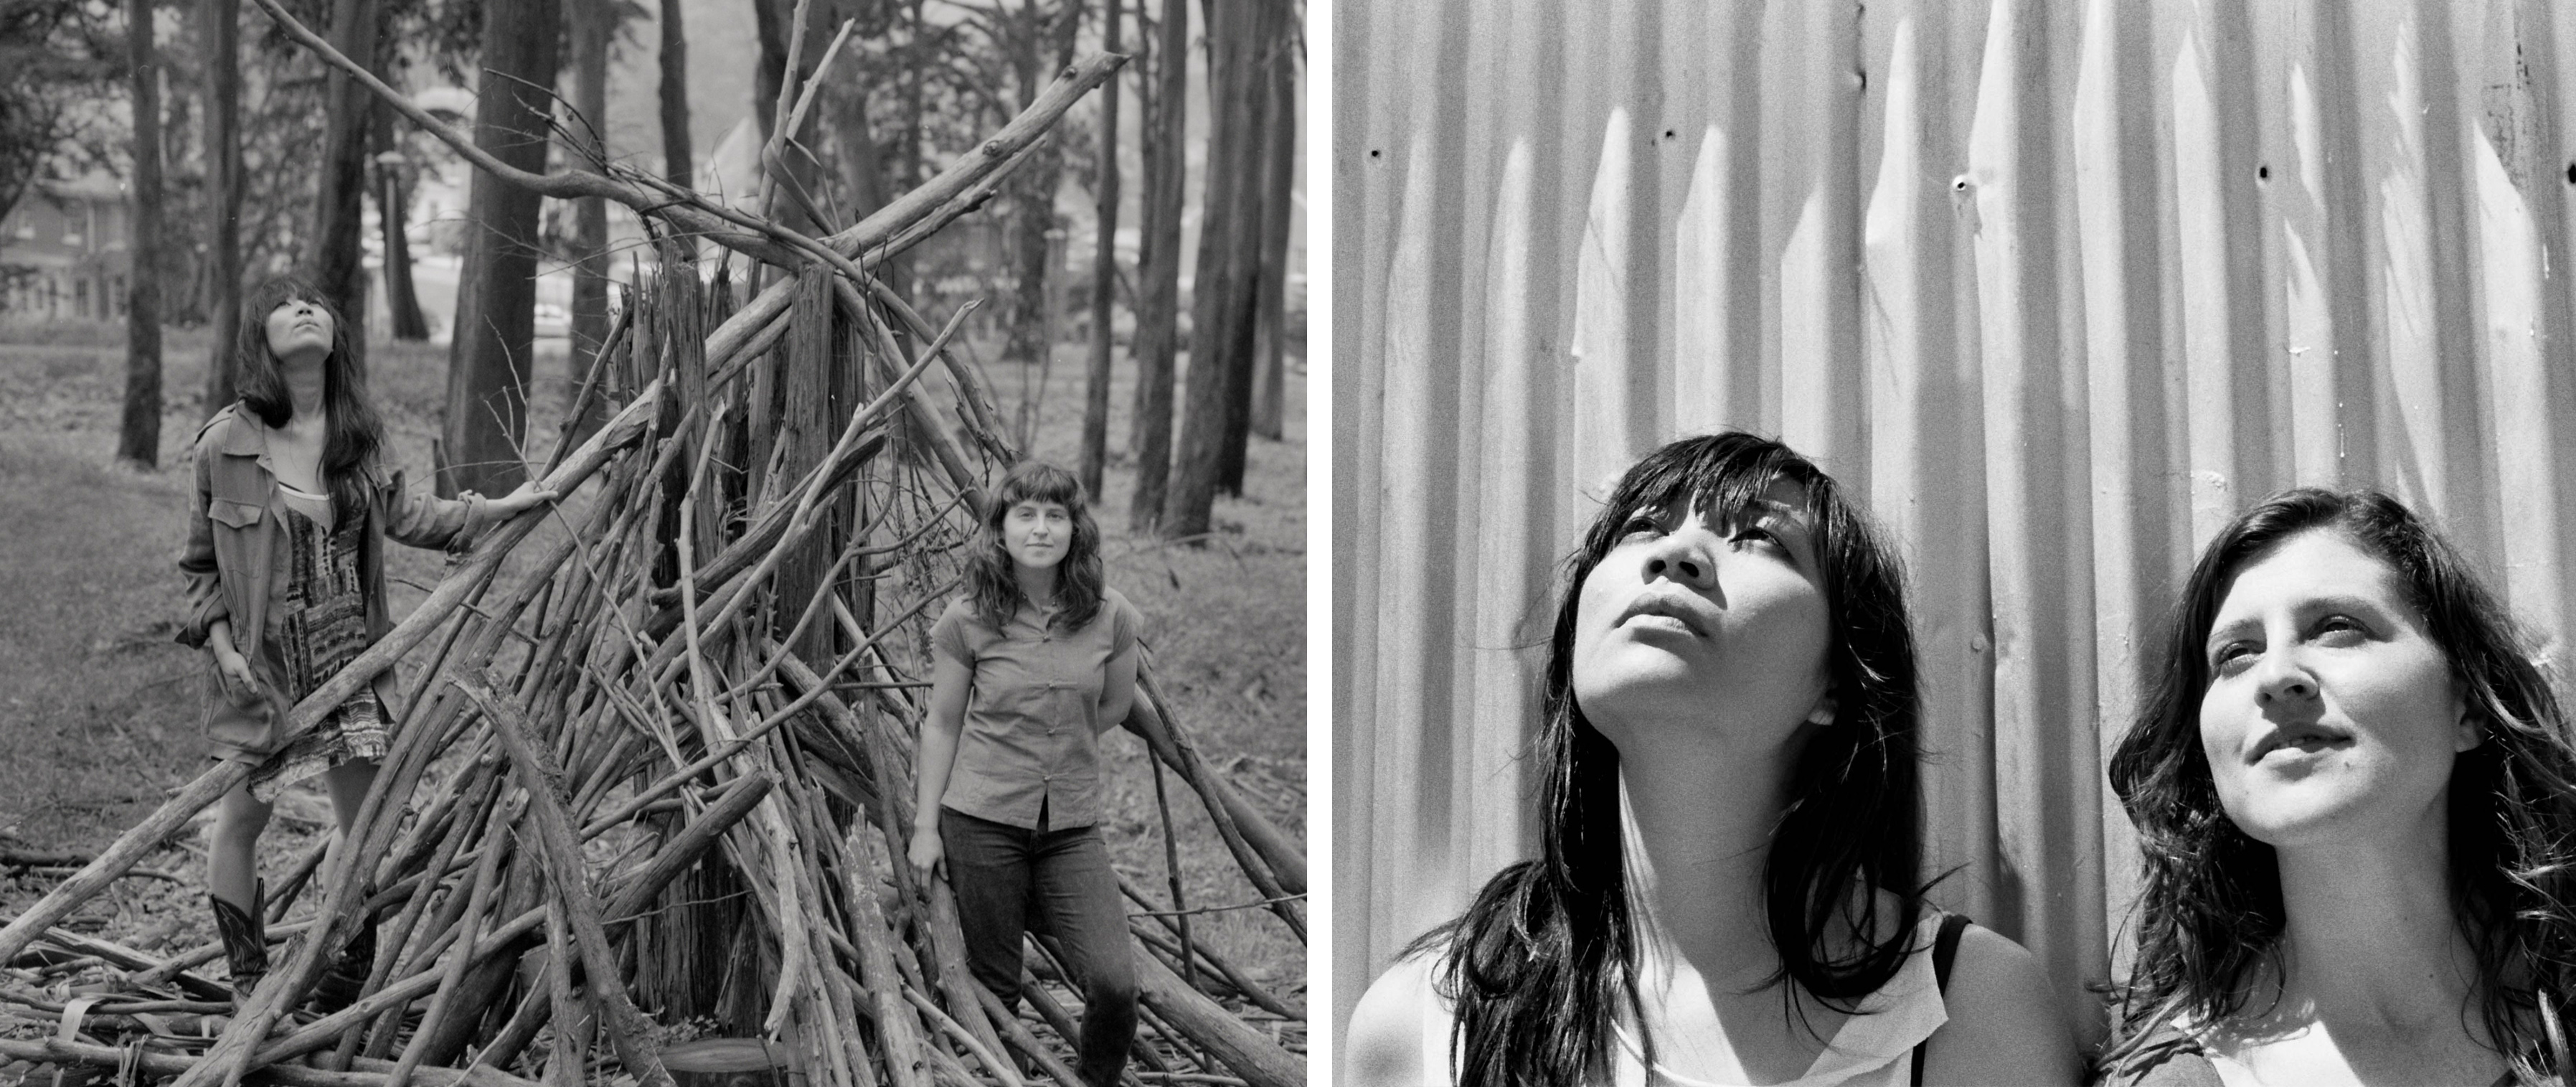 Thao + Mirah at the Fox - image 2 - student project